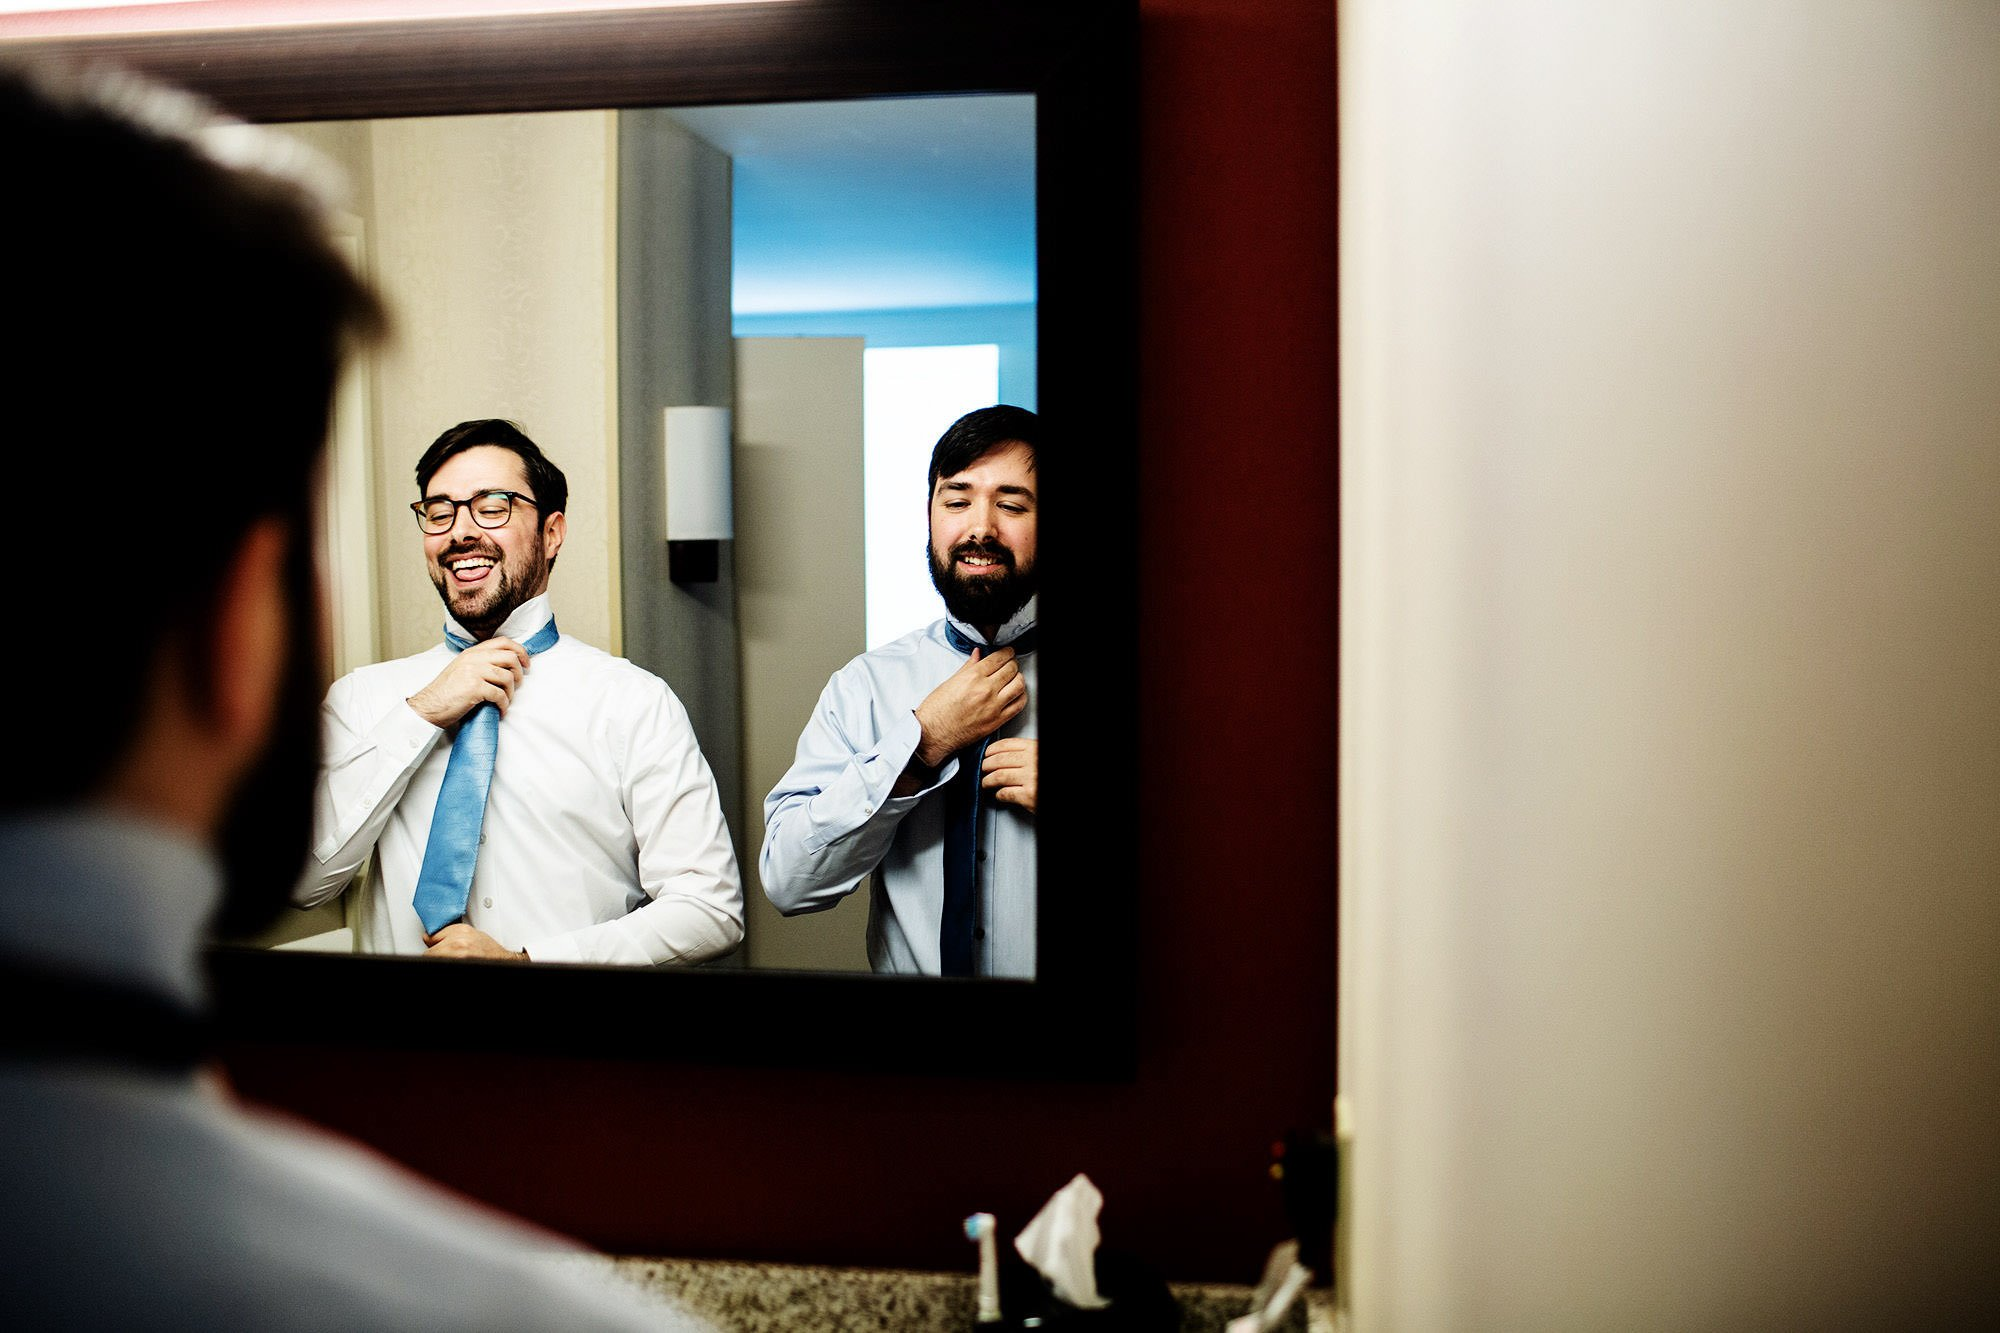 The groom and his best man put on their ties prior to the American Institute of Architects Wedding ceremony.